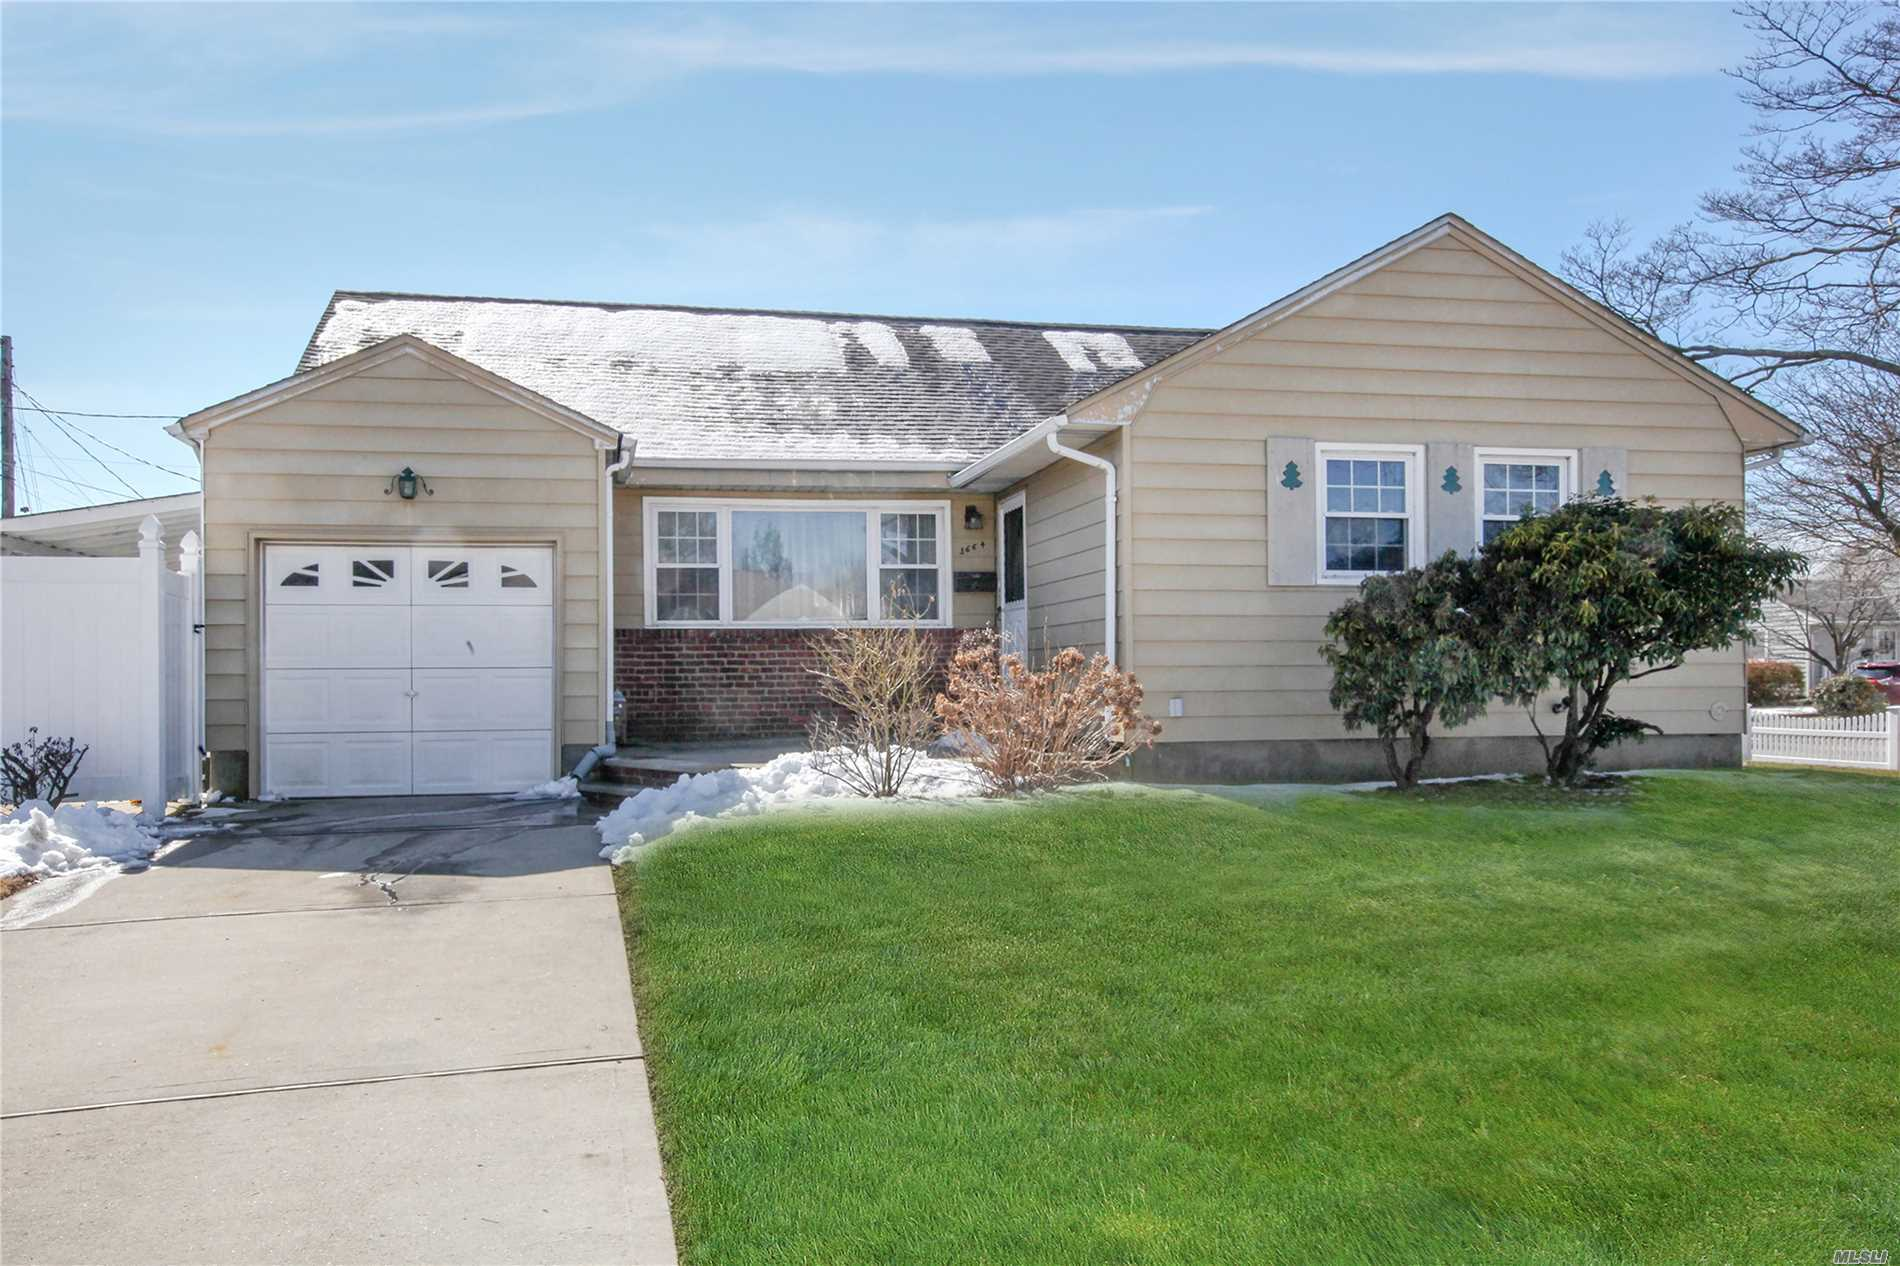 Beautiful and inviting 4 bedroom 2 bath expanded ranch. Lovely wood floors, updated appliances, boiler 1.5 years old, PVC fence. Conveniently located to shopping, highway and railroad station